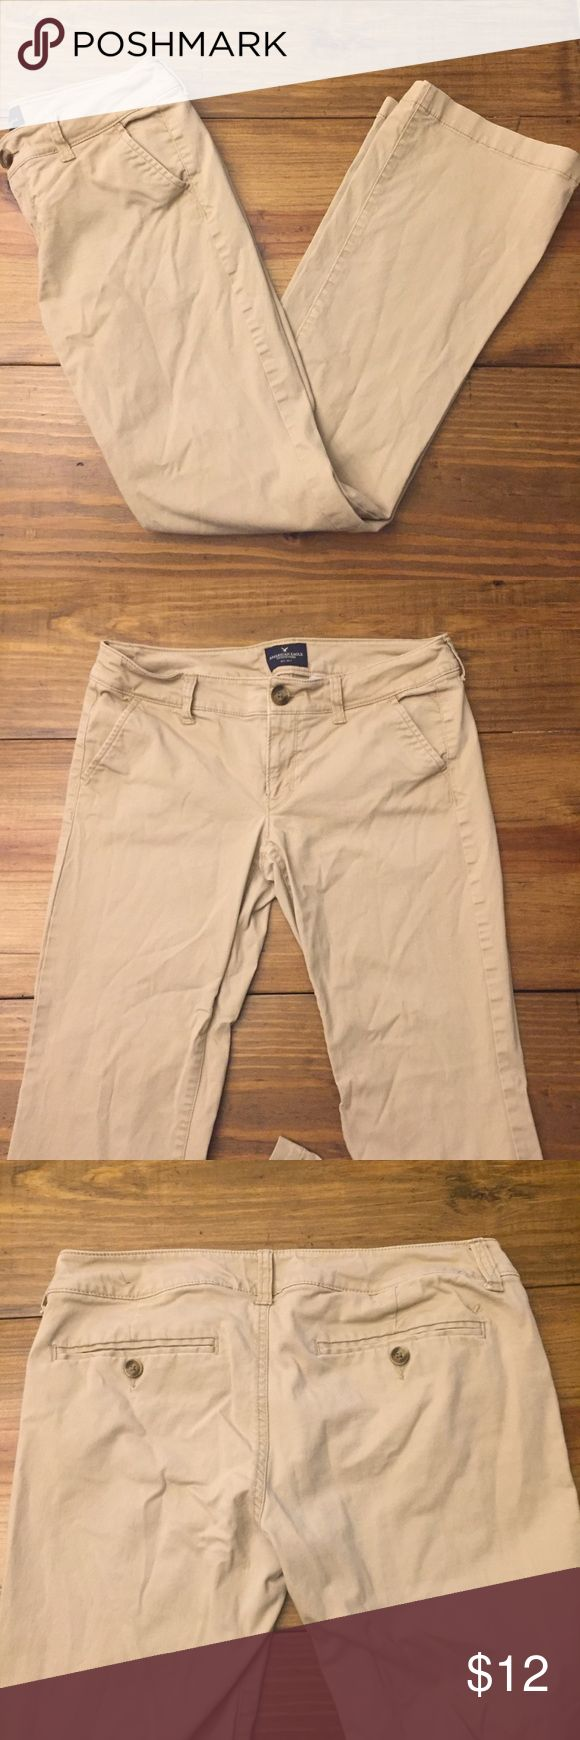 American Eagle Outfitters Kick Boot Khaki Pants 6 Women's size 6 Kick Boot Khaki Pants by American Eagle Outfitters. Great Condition, no markings American Eagle Outfitters Pants Boot Cut & Flare